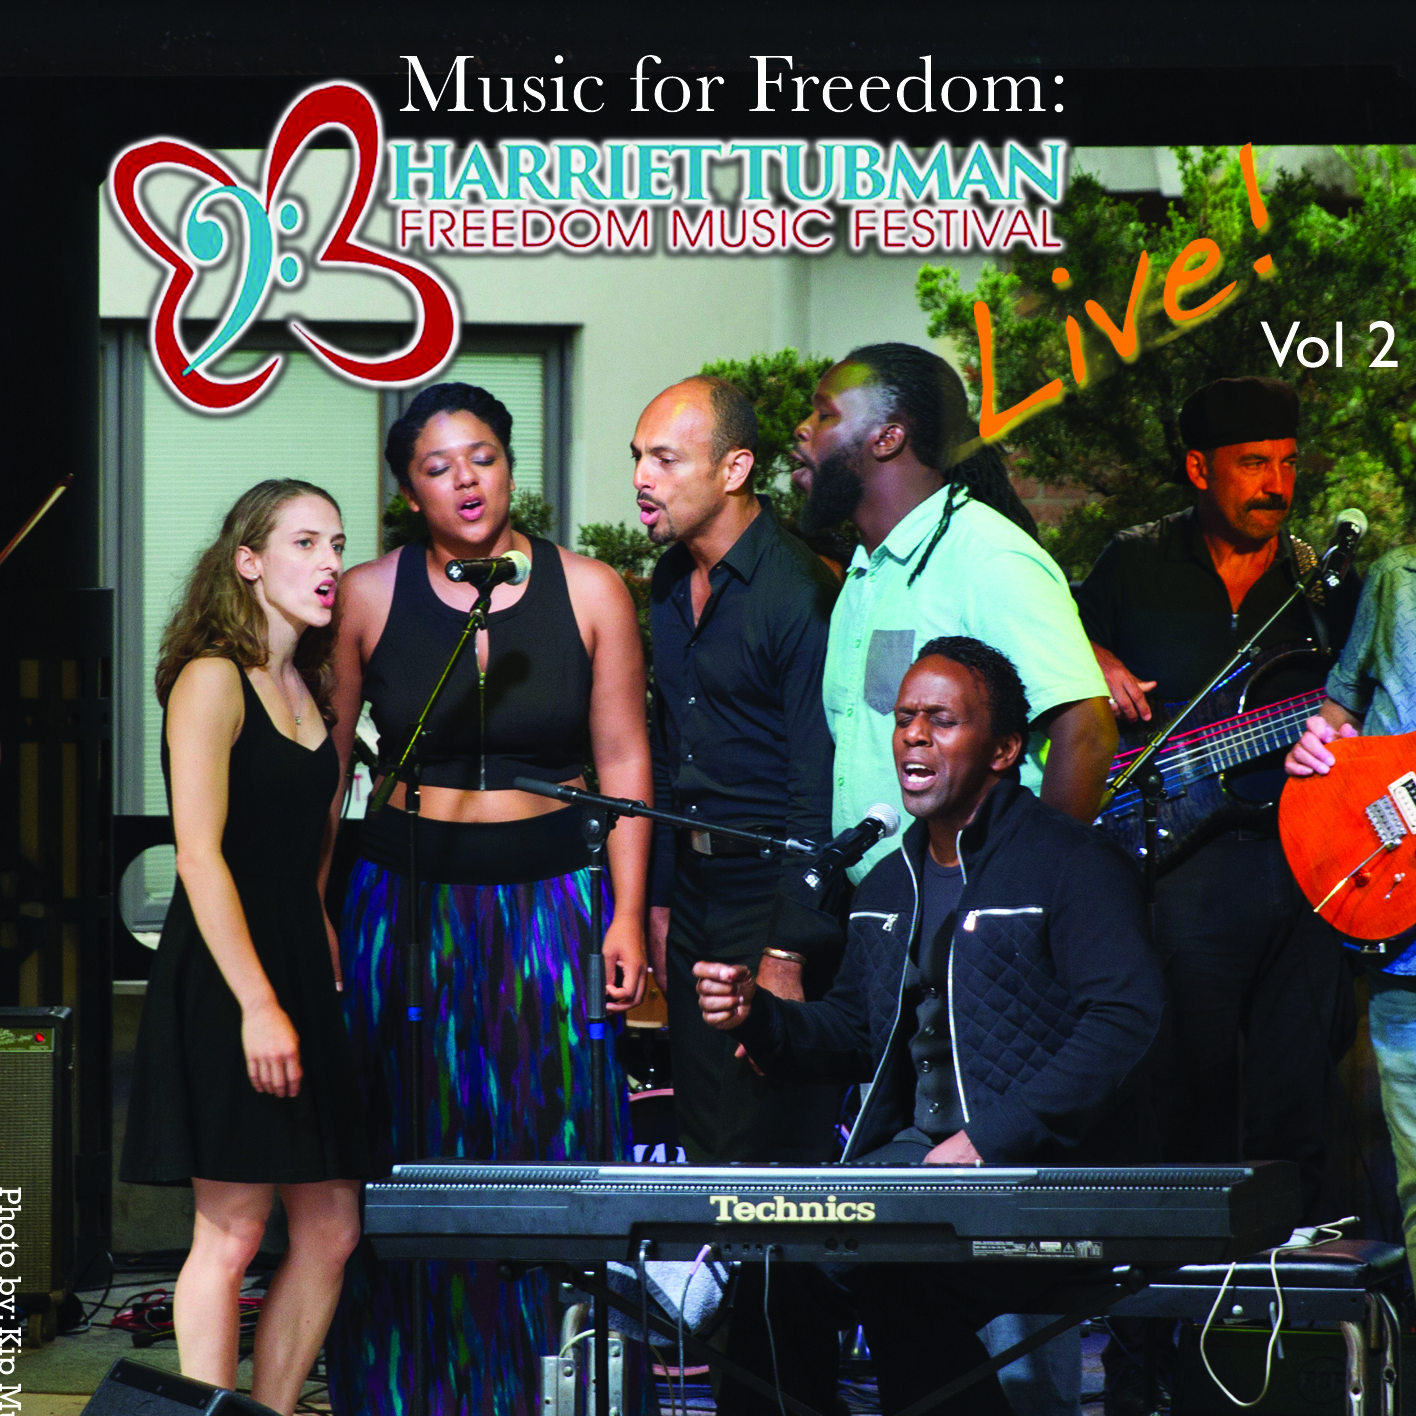 Album Cover - Square - Music for Freedom Harriet Tubman Freedom Music Festival Live Volume 2